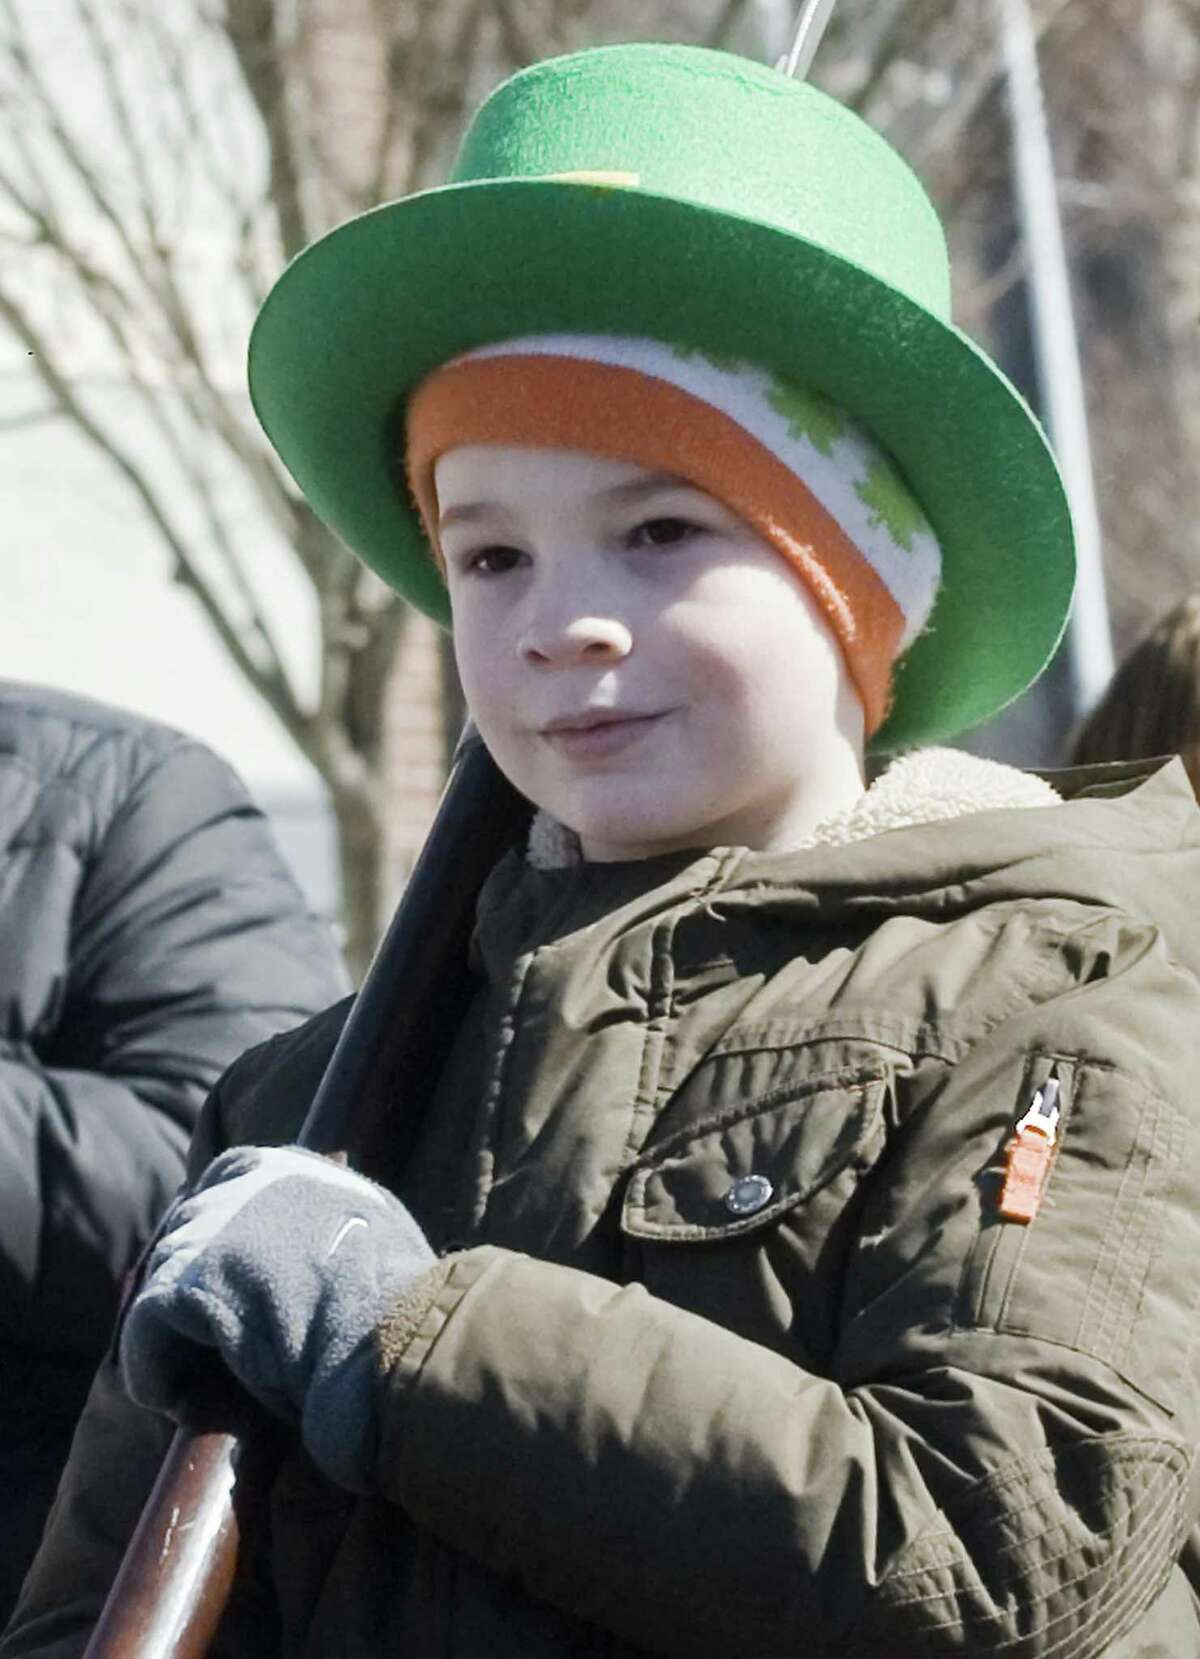 Liam Hearty, 8 of New Fairfield, marching in the Greater Danbury Irish Cultural Center's St. Patrick's Day parade on Main Street in Danbury. Sunday, March 19, 2017